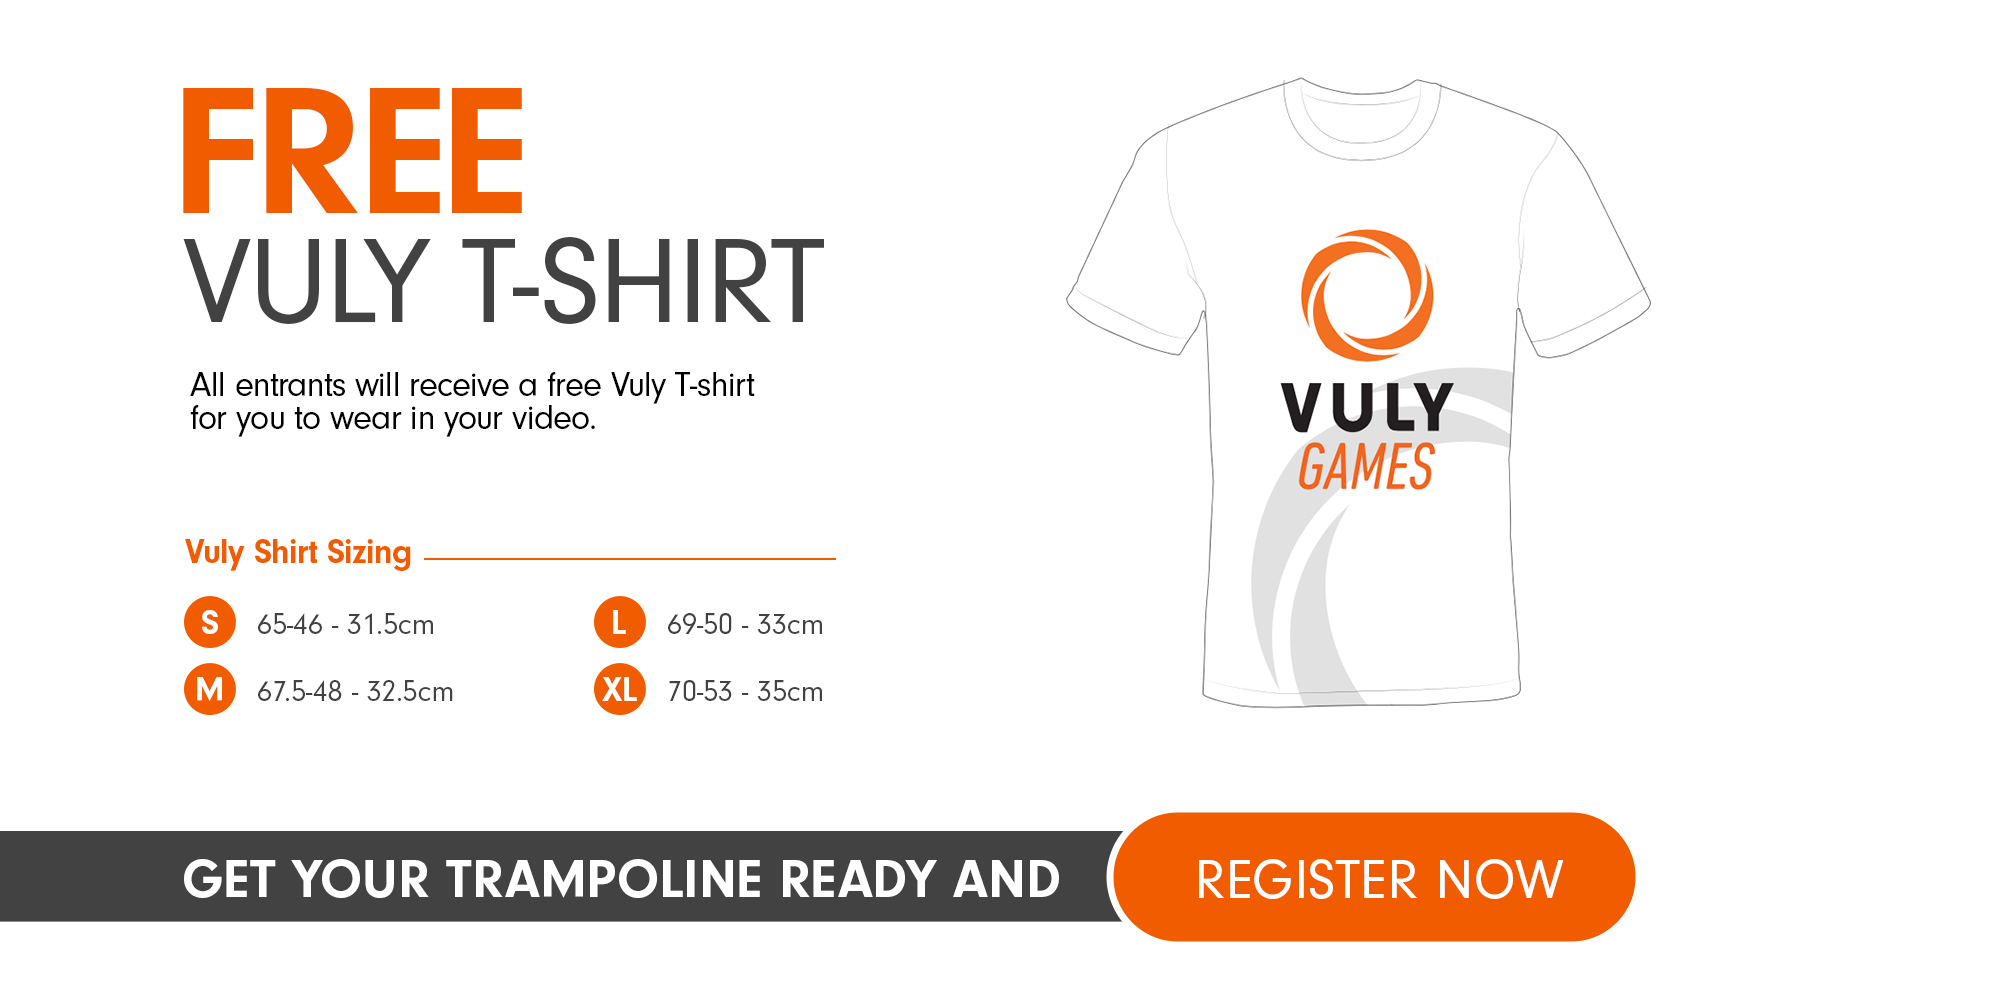 Vuly Games